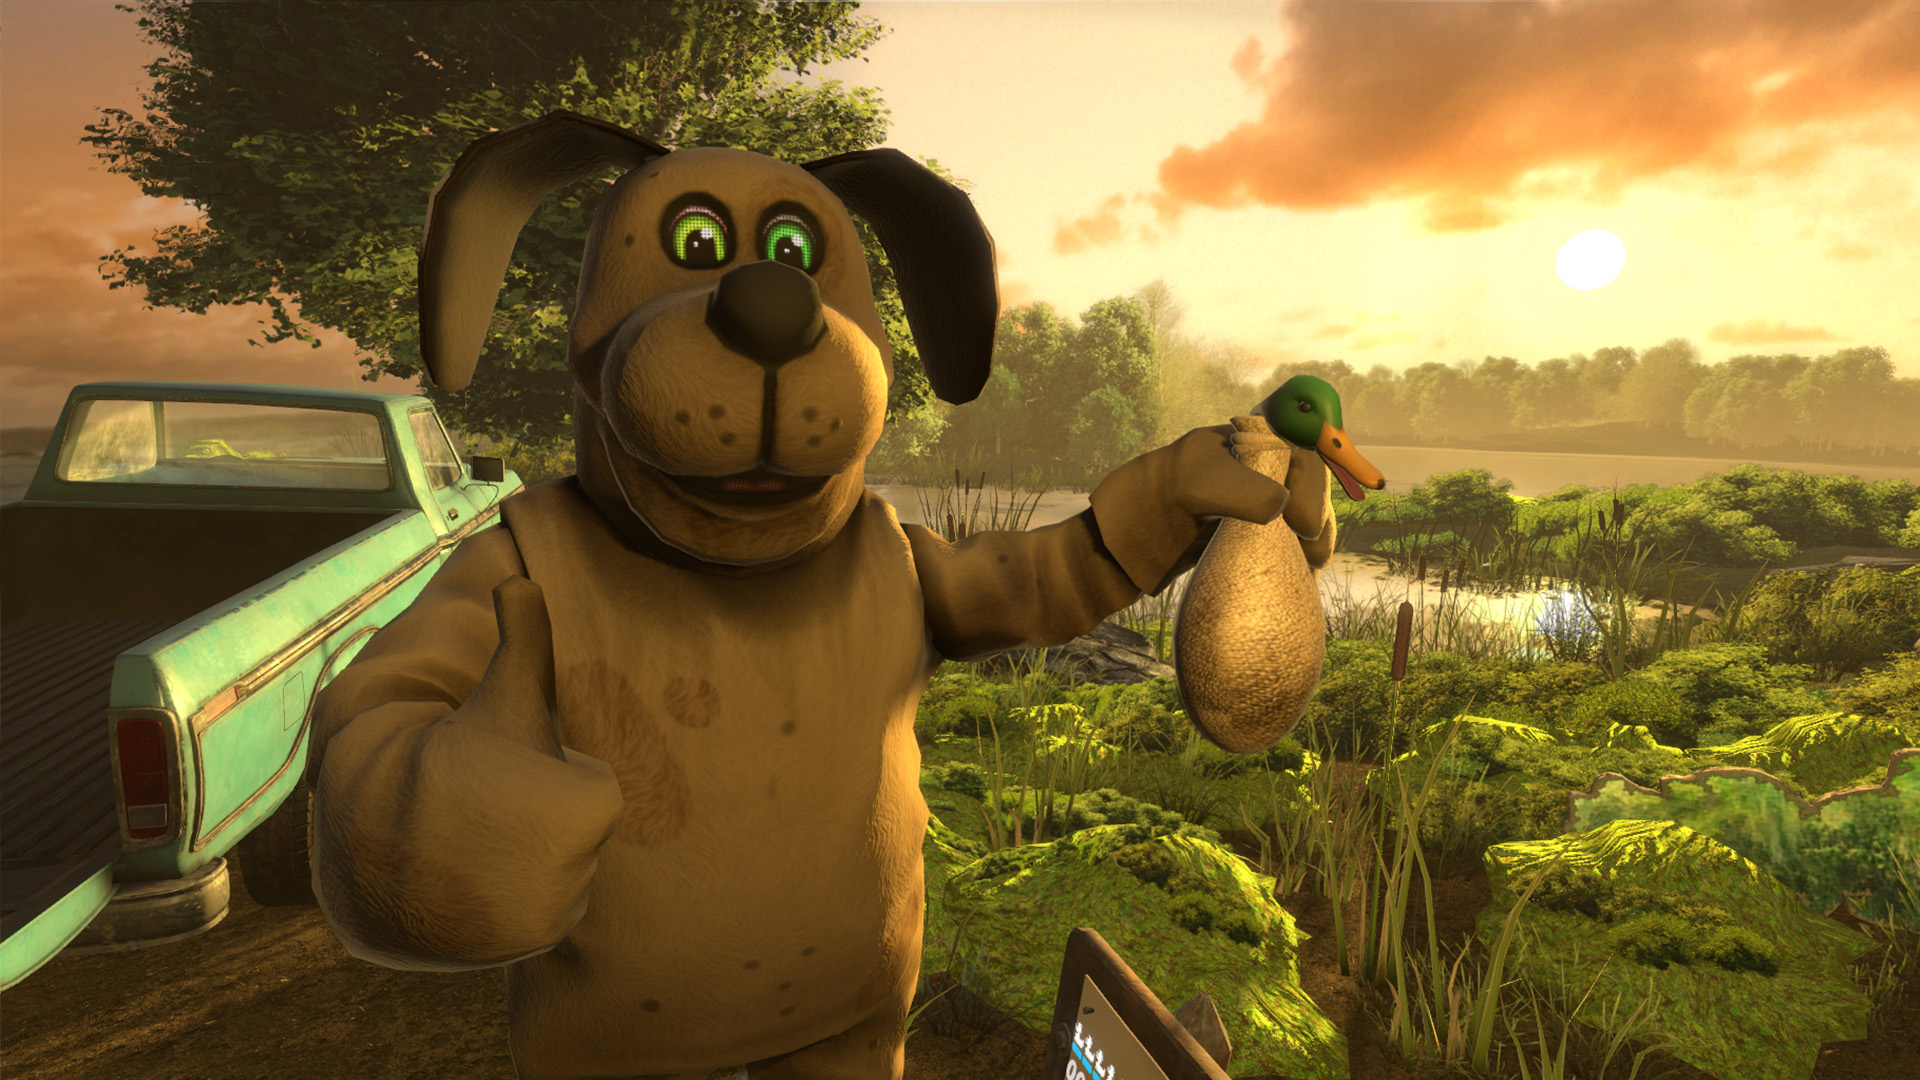 Love Animation Wallpaper Duck Season Vr Comes Out Next Week Virtual Reality Times